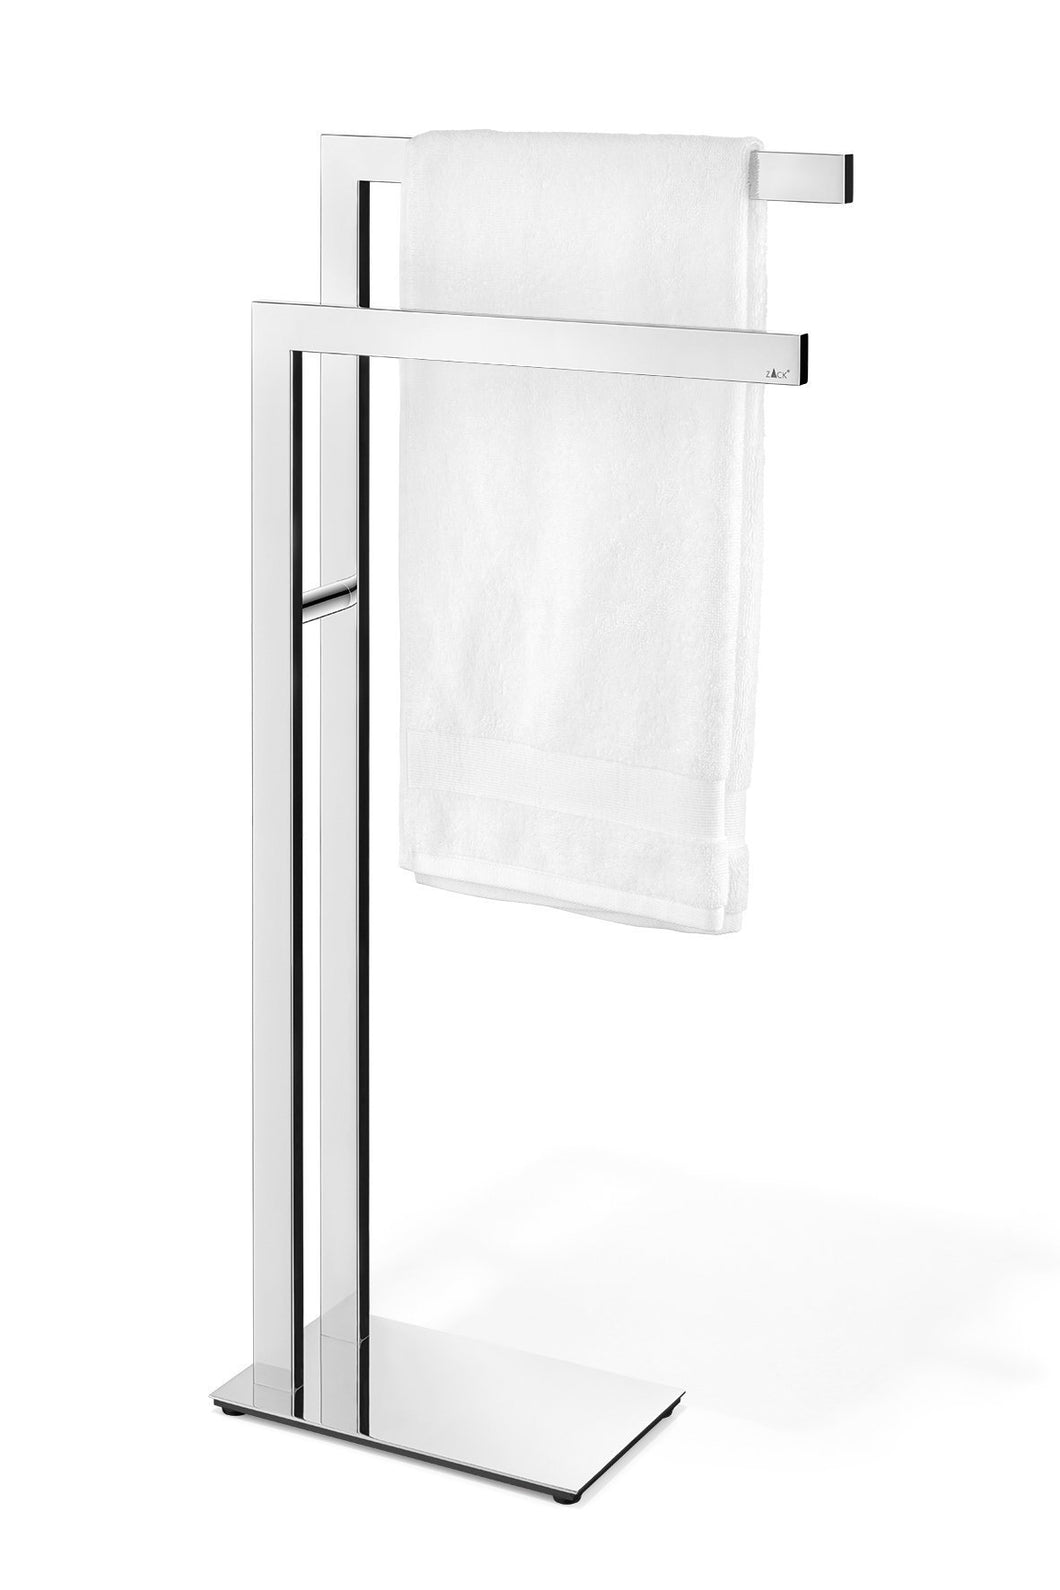 Discover zack 40046 towel stand stainless steel metallic